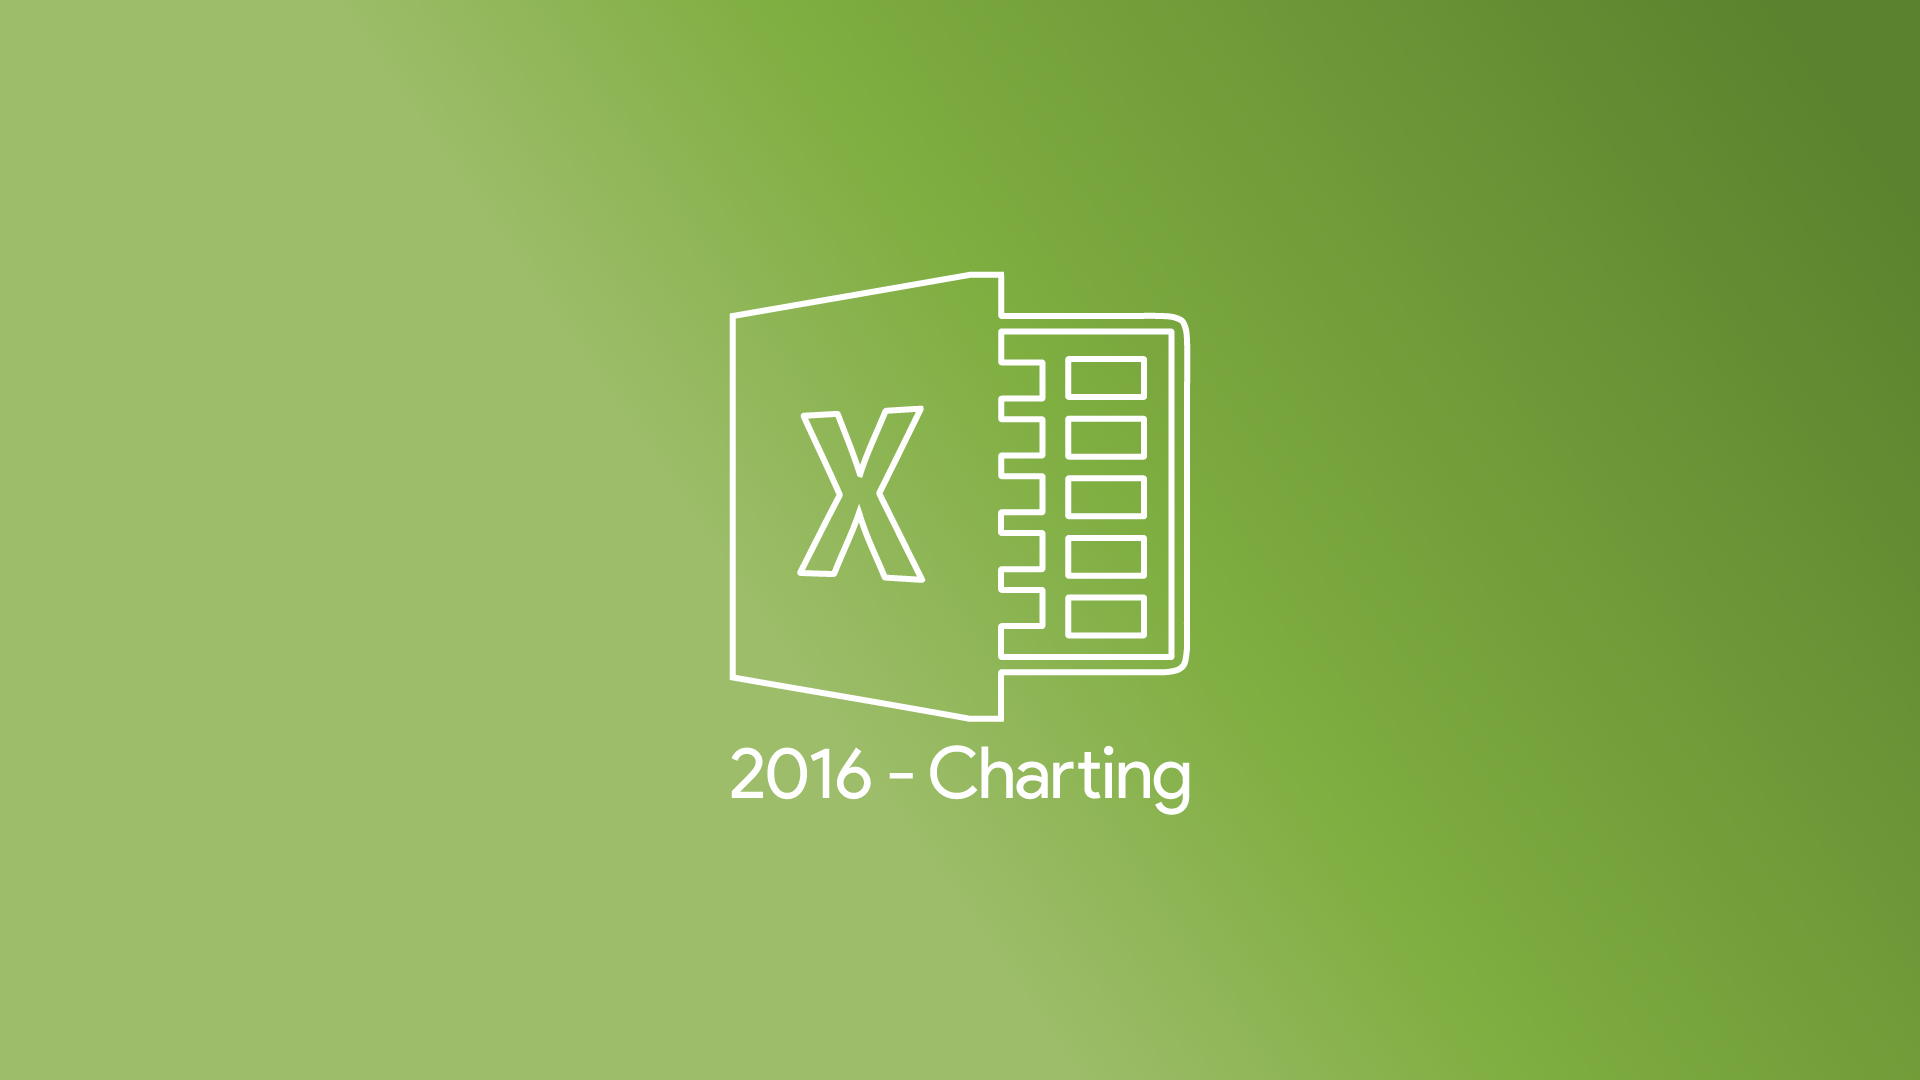 Excel 2016 - Charting